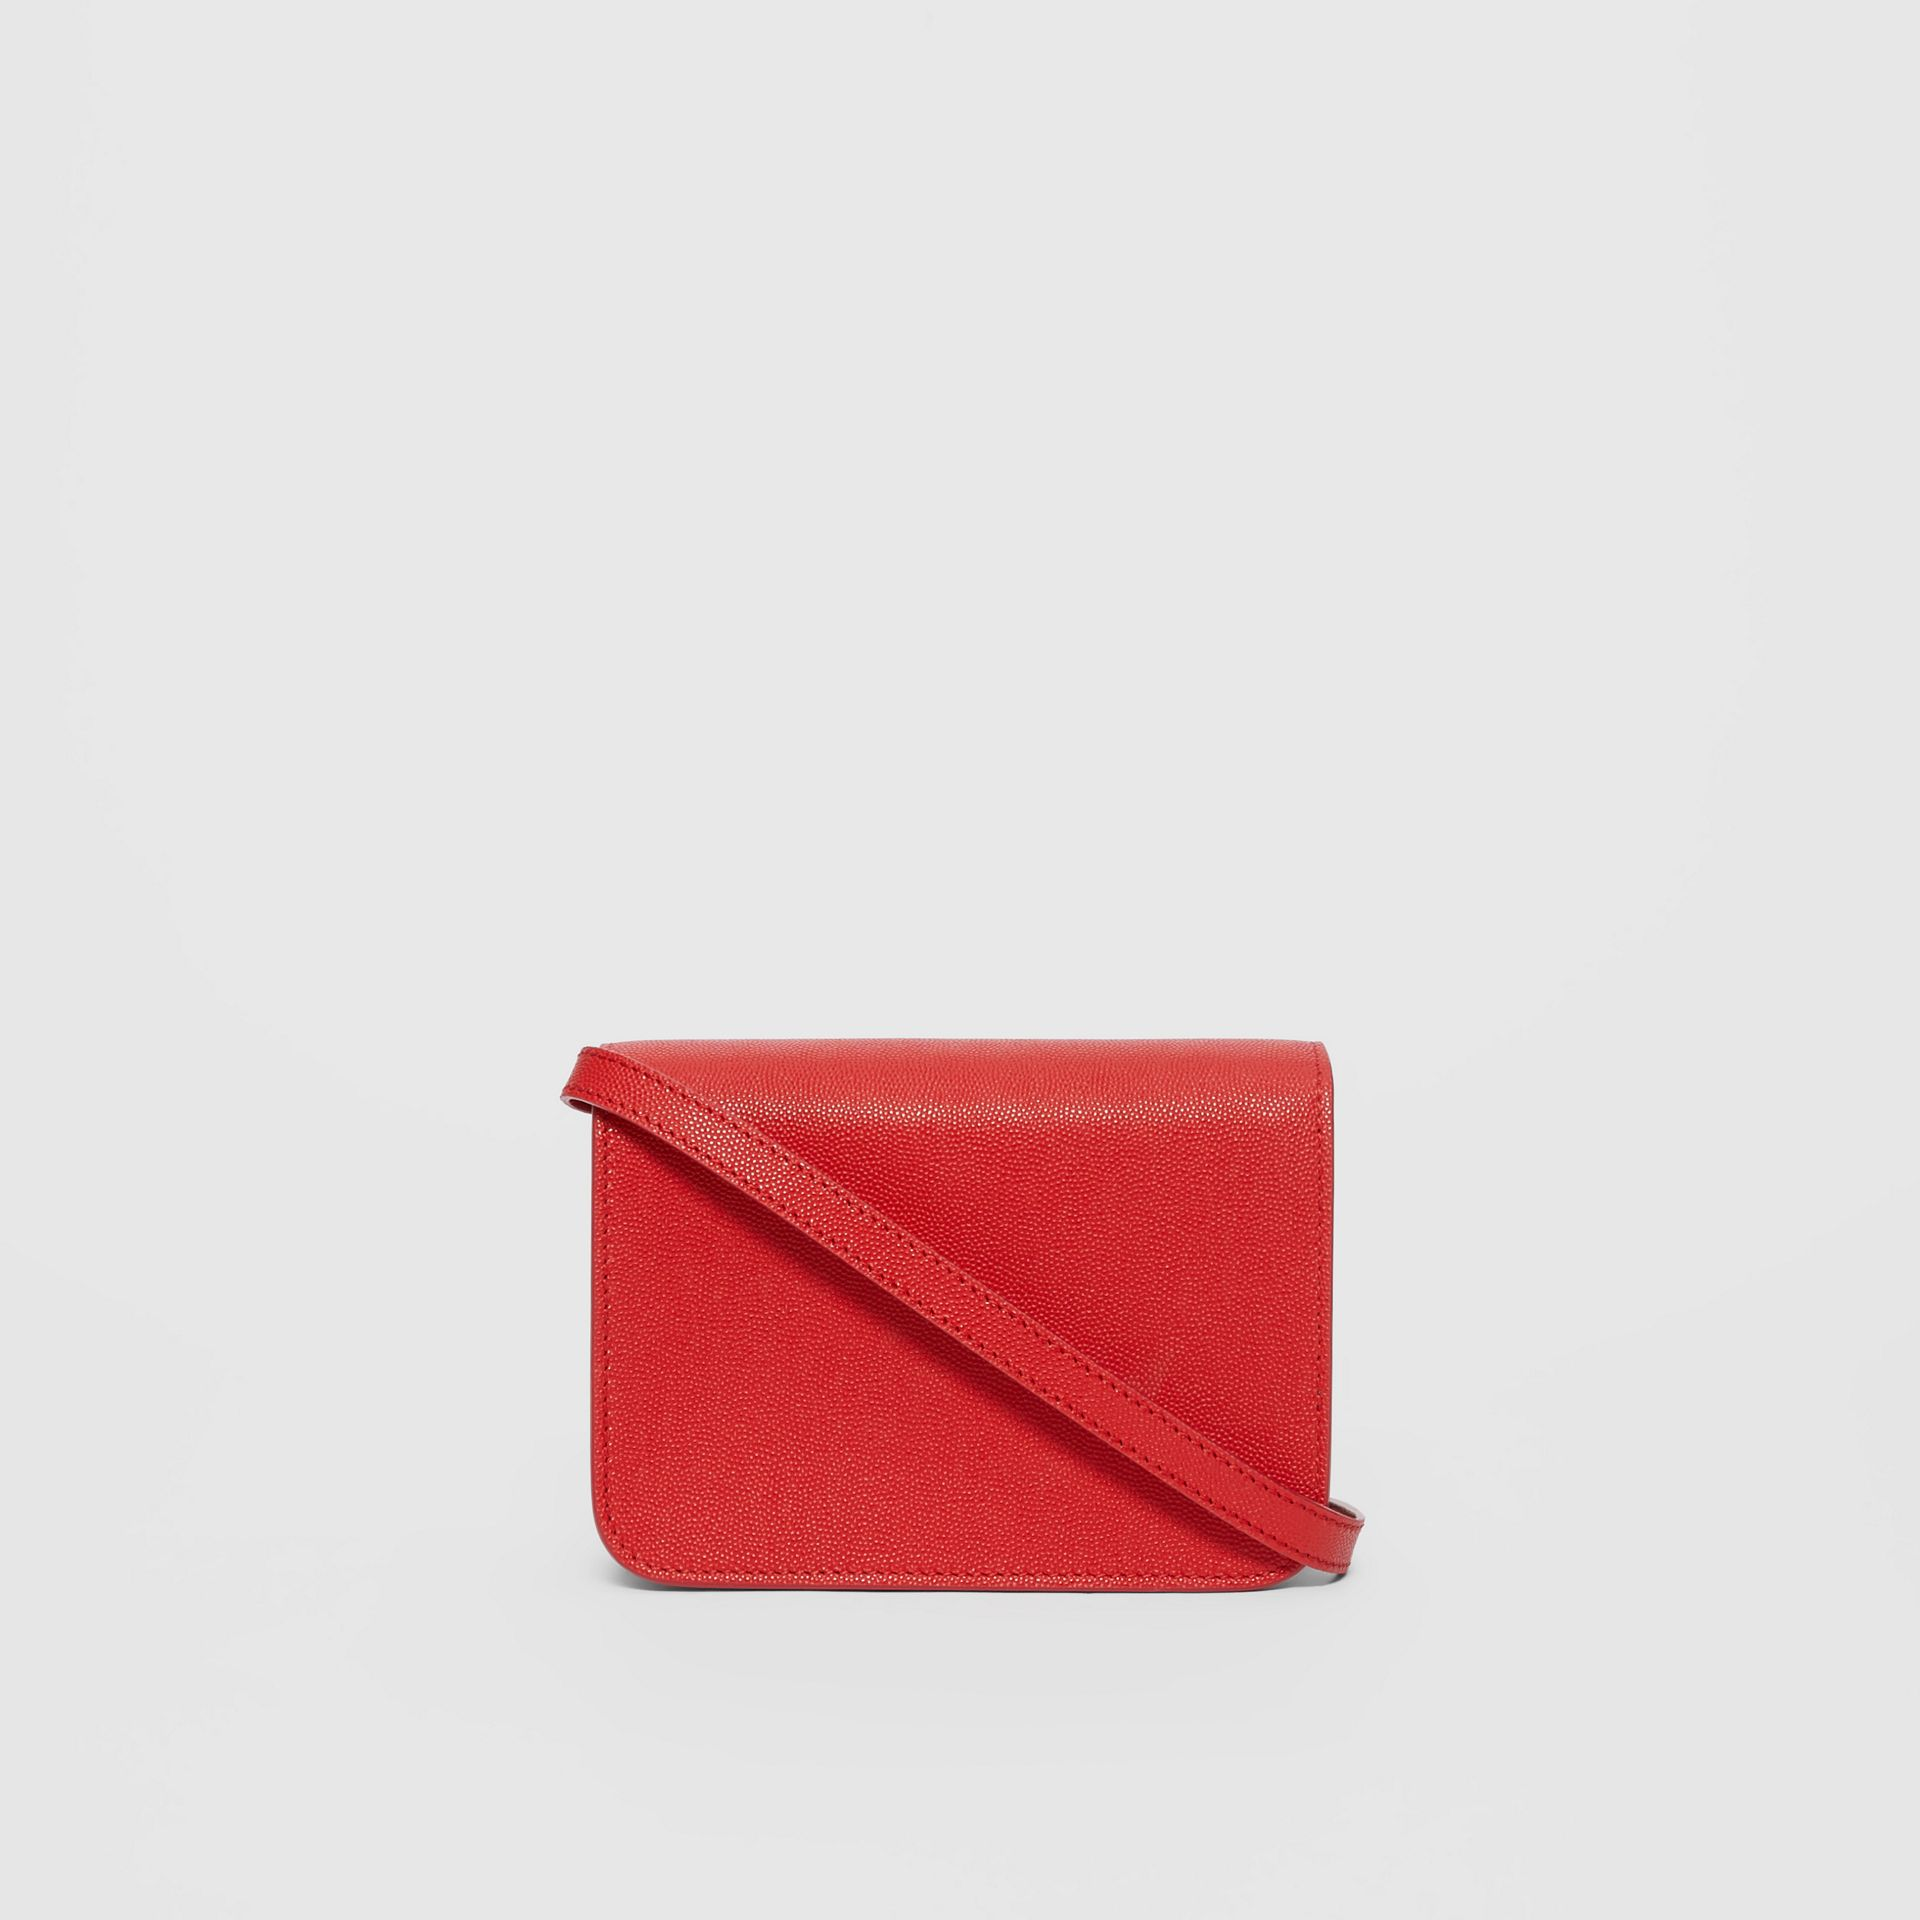 Mini Grainy Leather TB Bag in Bright Red - Women | Burberry Hong Kong S.A.R - gallery image 7